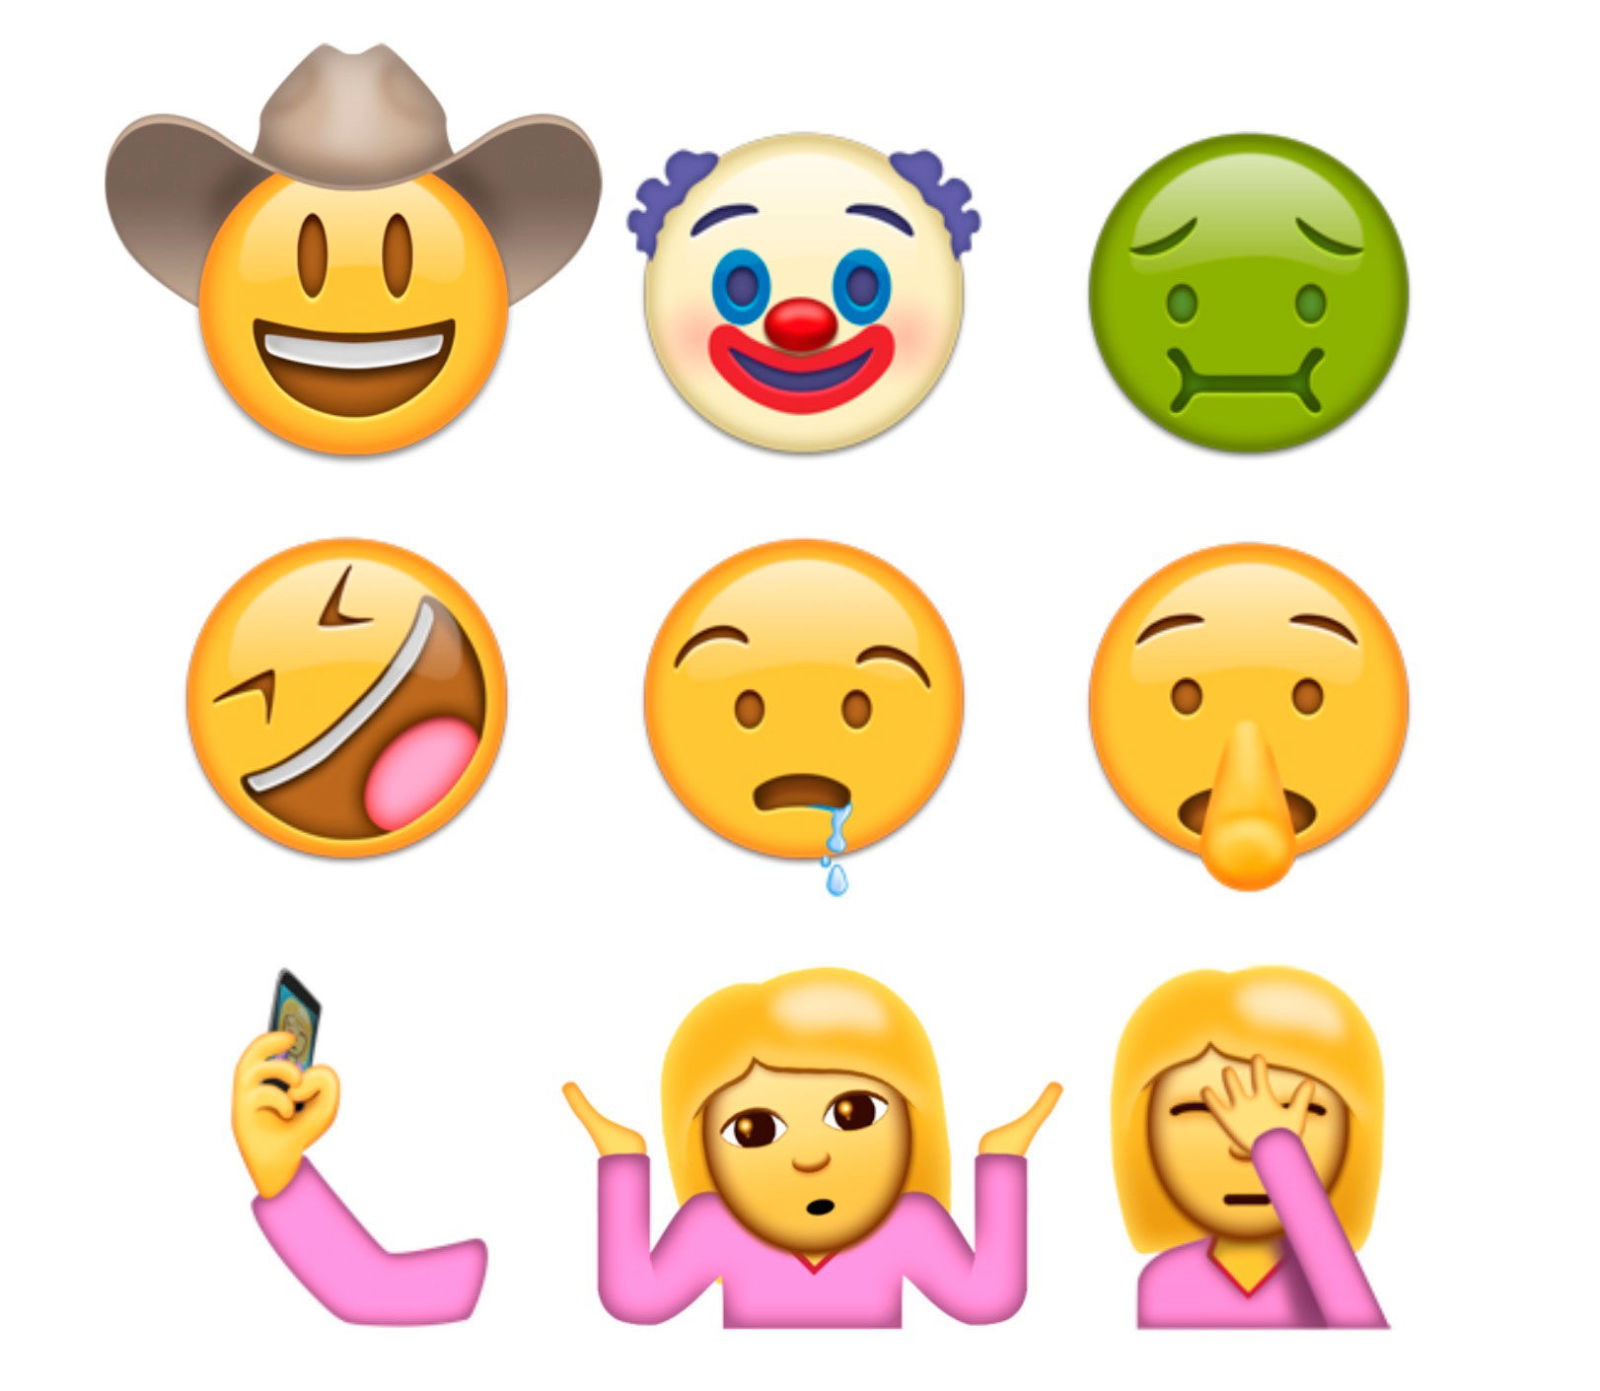 These Are The NEW EMOJIS We Should Be Getting Imminently